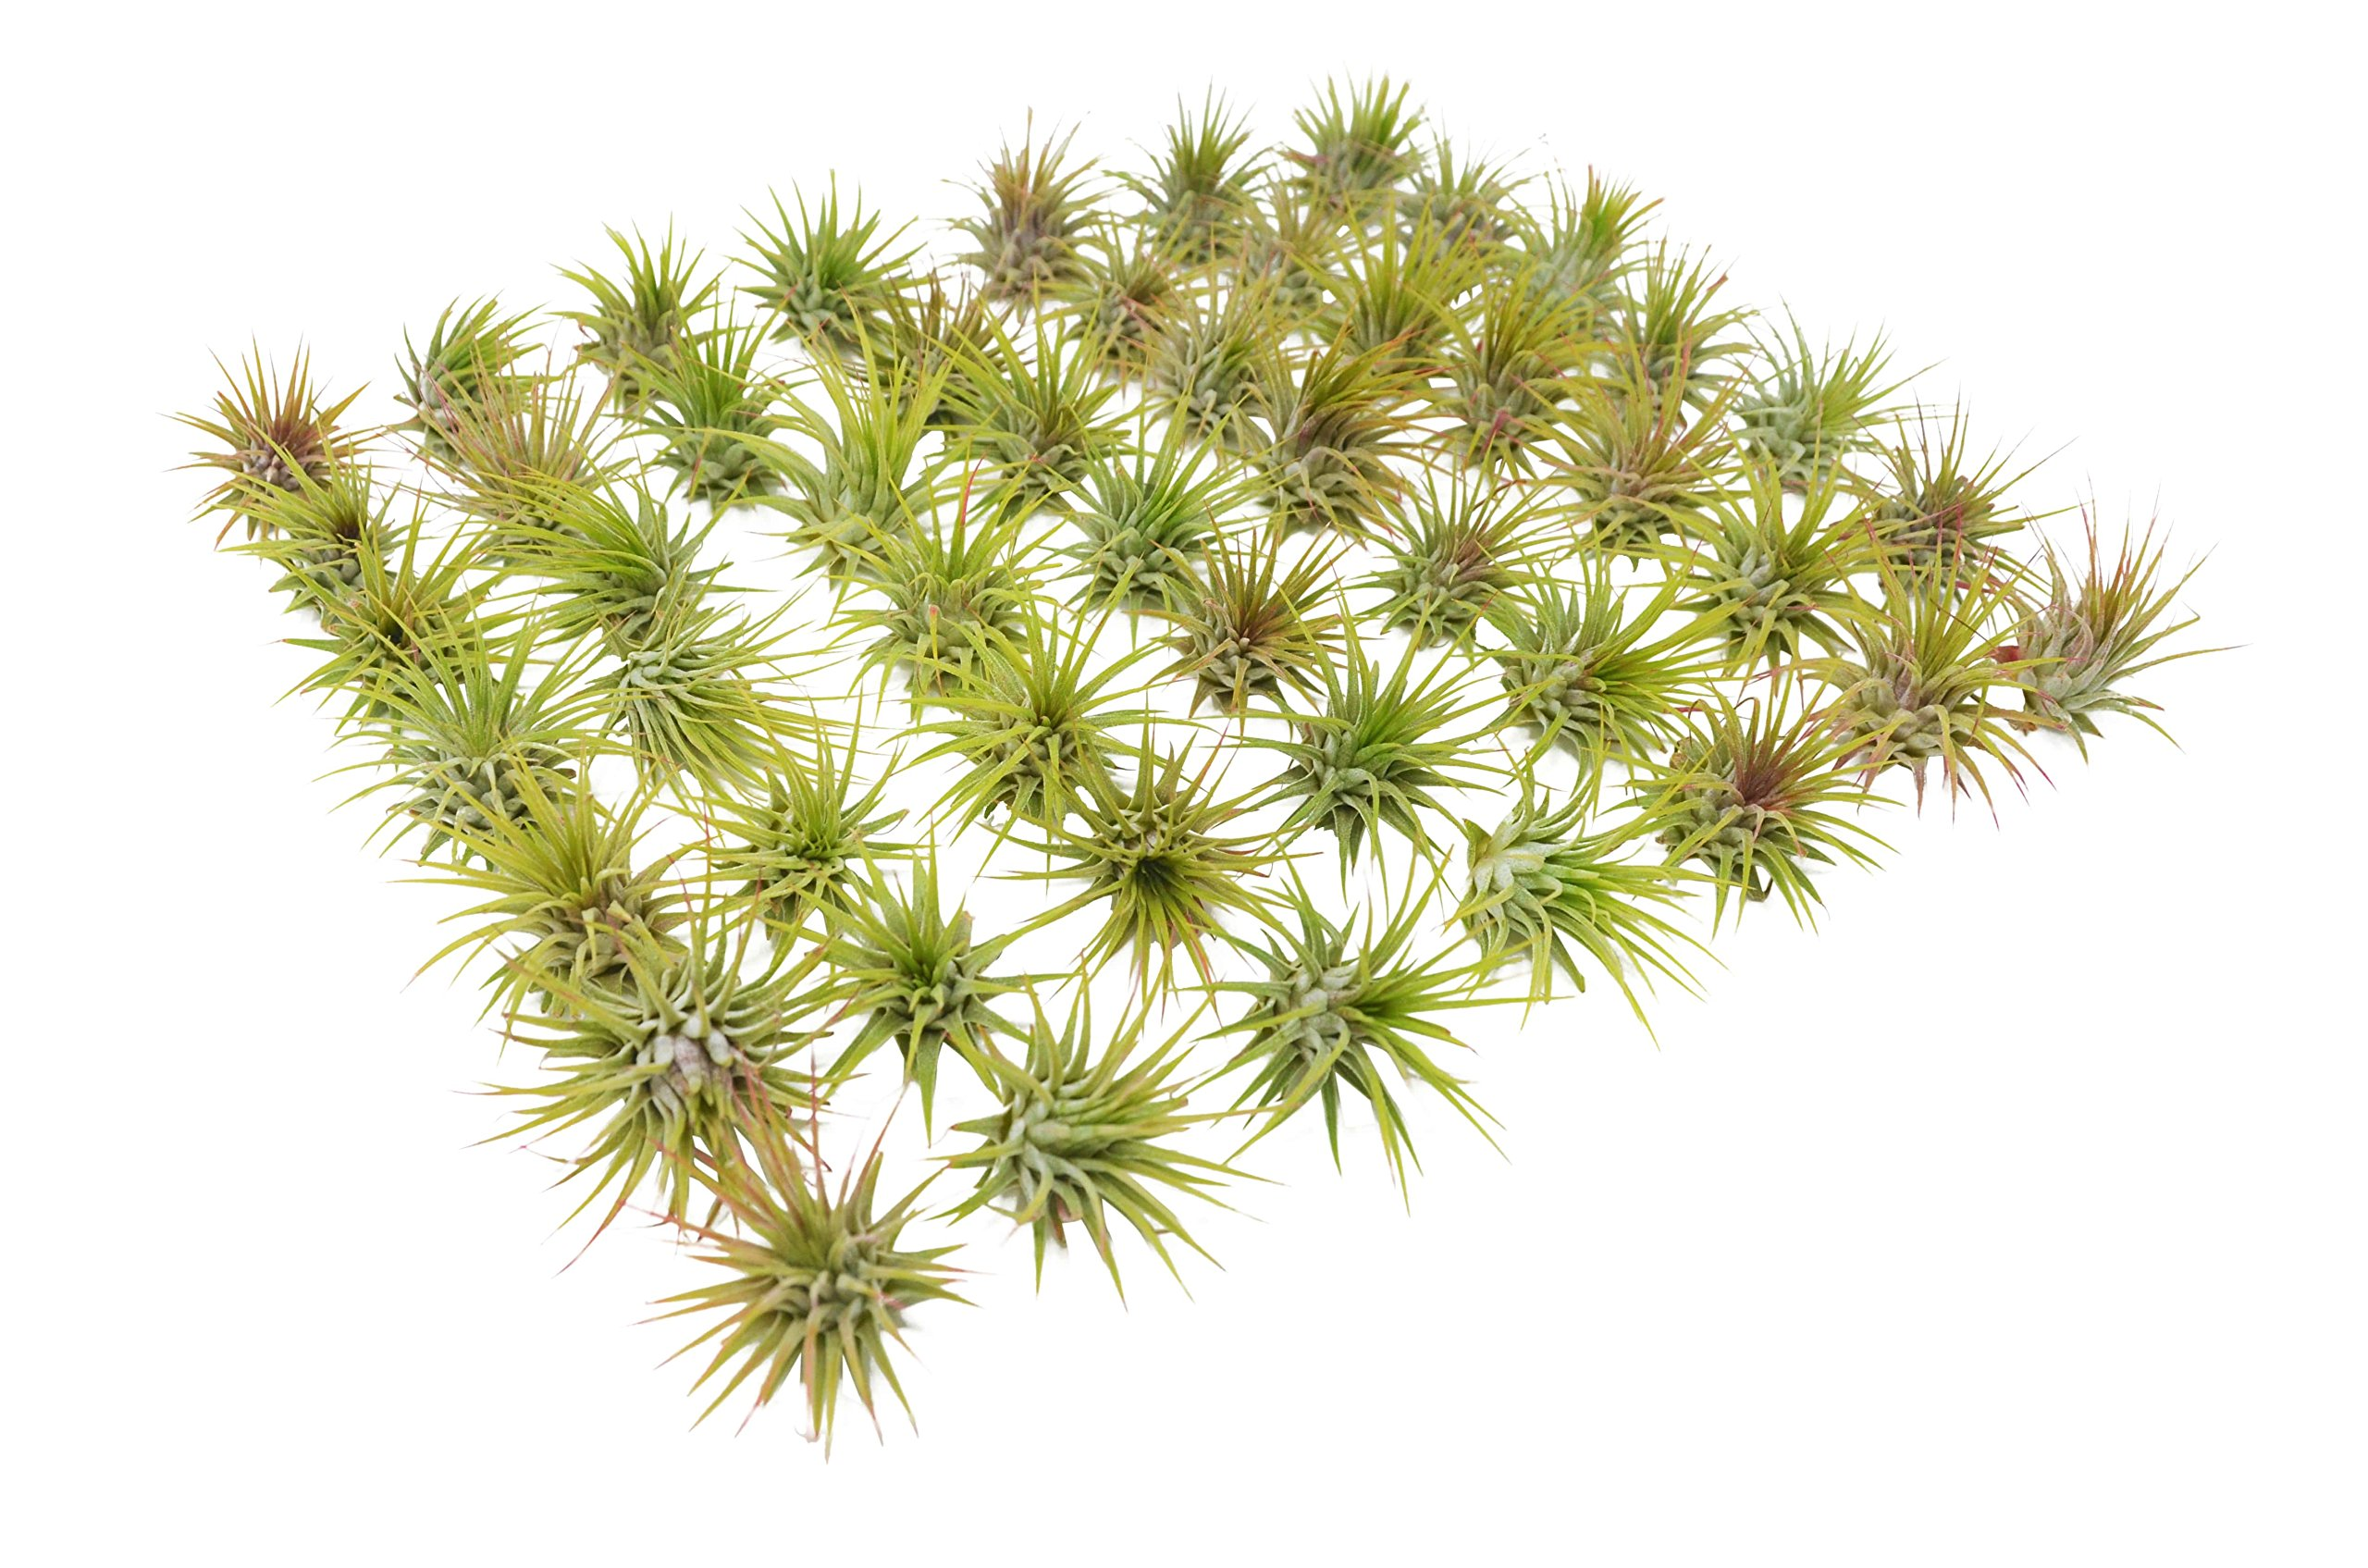 Bulk Ionantha Air Plant Pack / 2-3 Inches Large/Wholesale (25 and 50 Packs) (50)